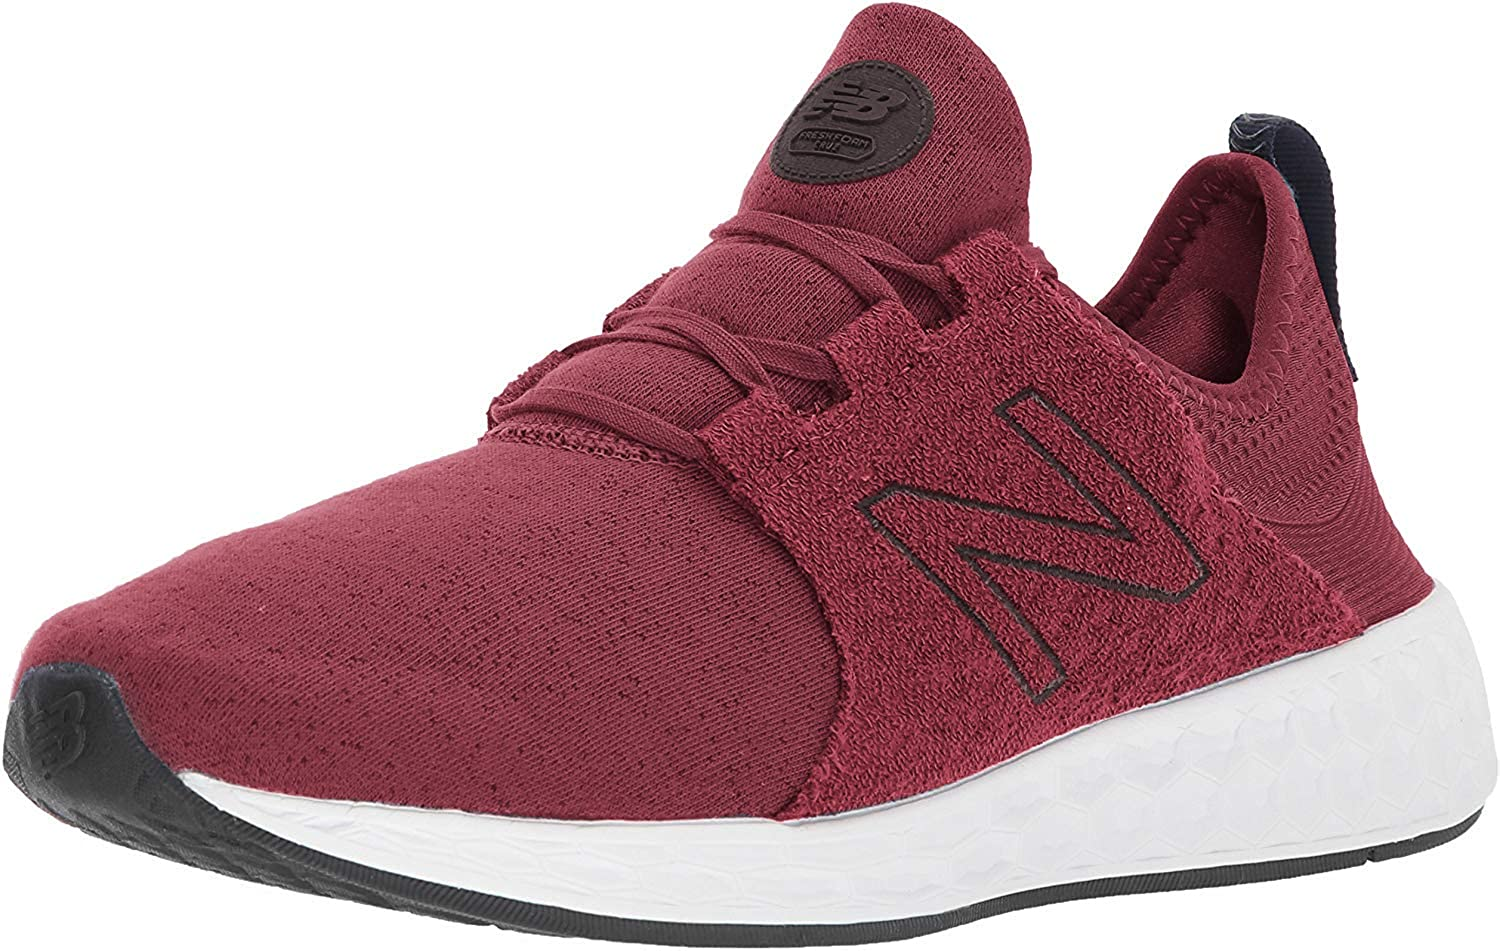 New Balance Men's Cruz v1 Retro Hoodie Running Shoe